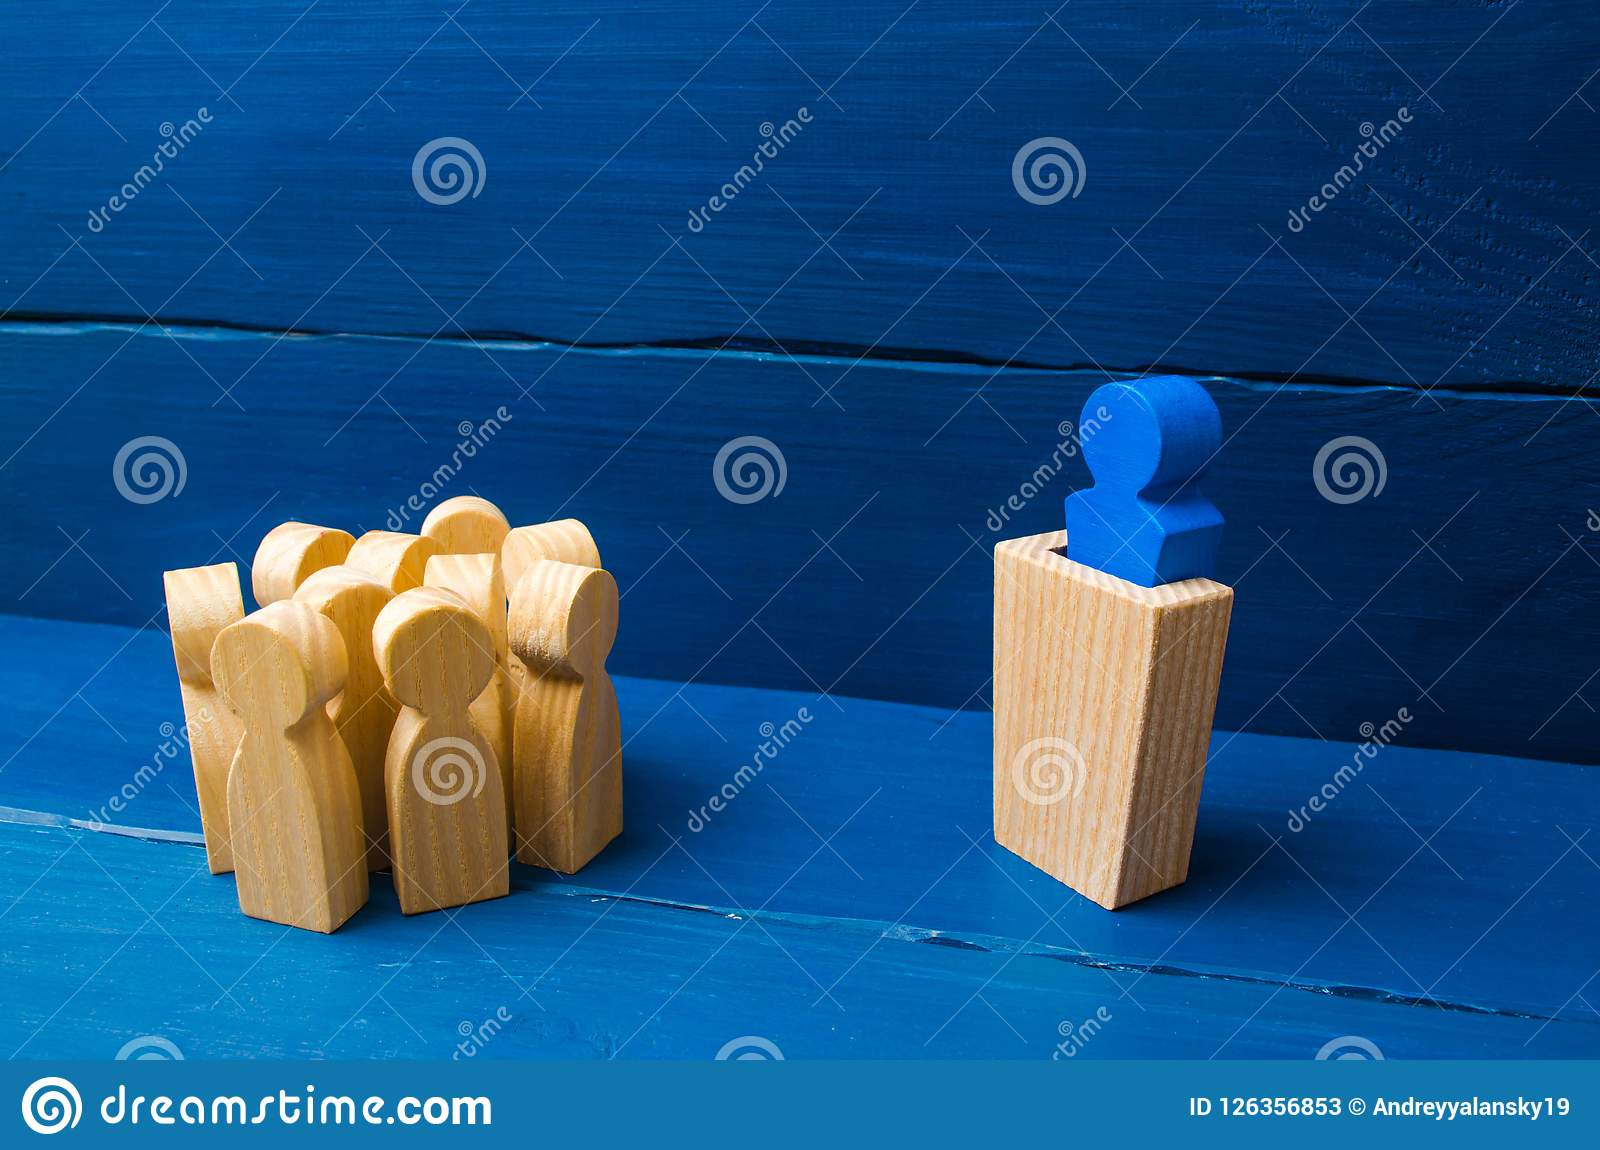 Business concept of leader and leadership qualities, crowd management, political debate and elections. Business management. The le